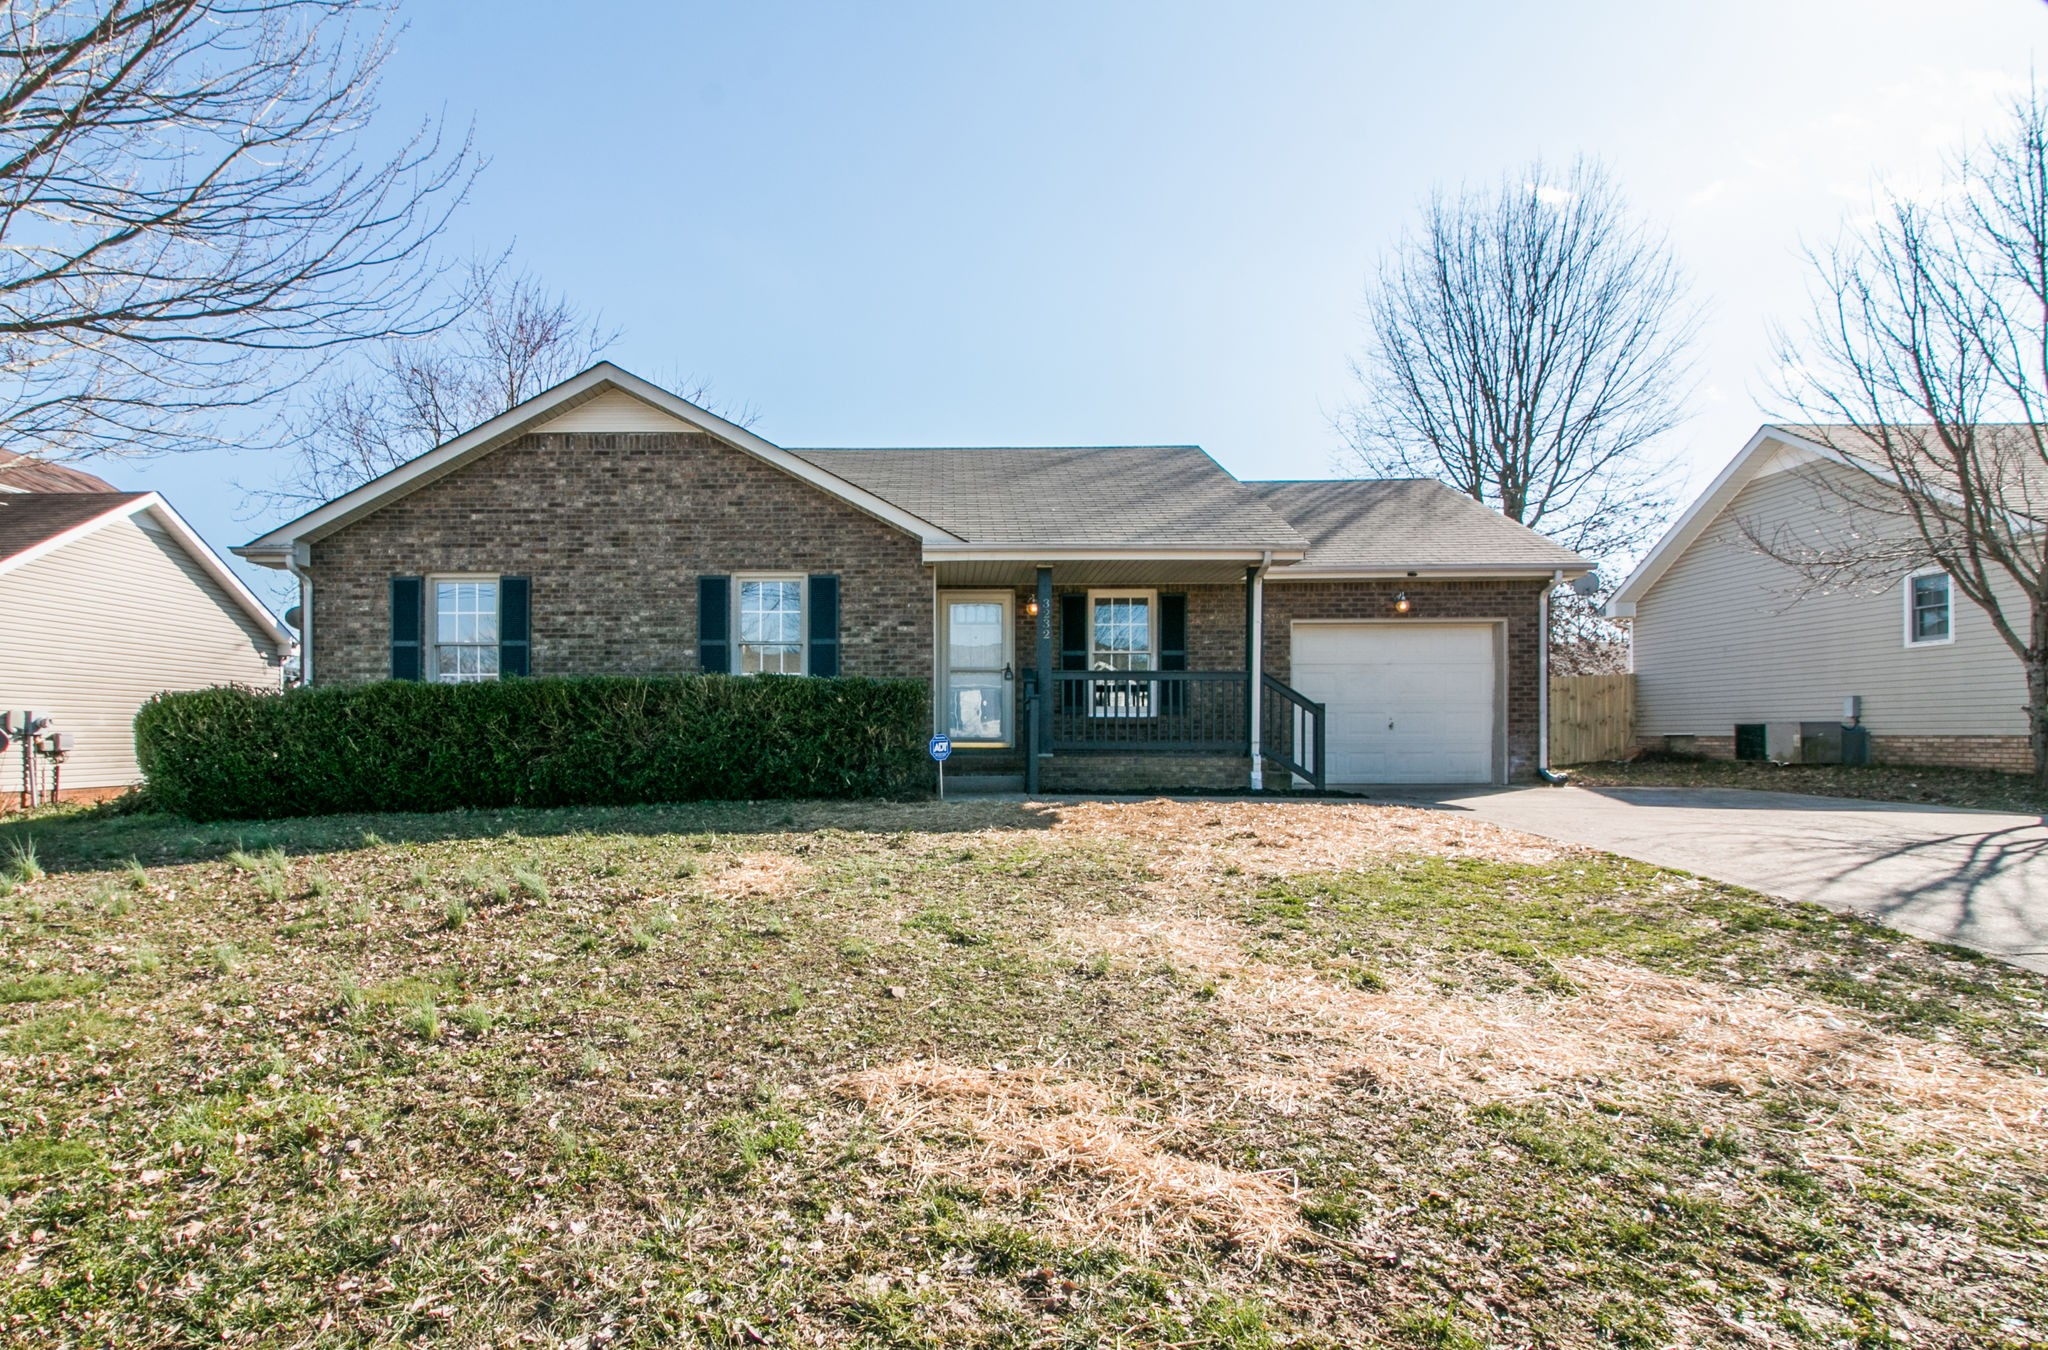 3232 Tabby Dr, Clarksville, TN 37042 - Clarksville, TN real estate listing